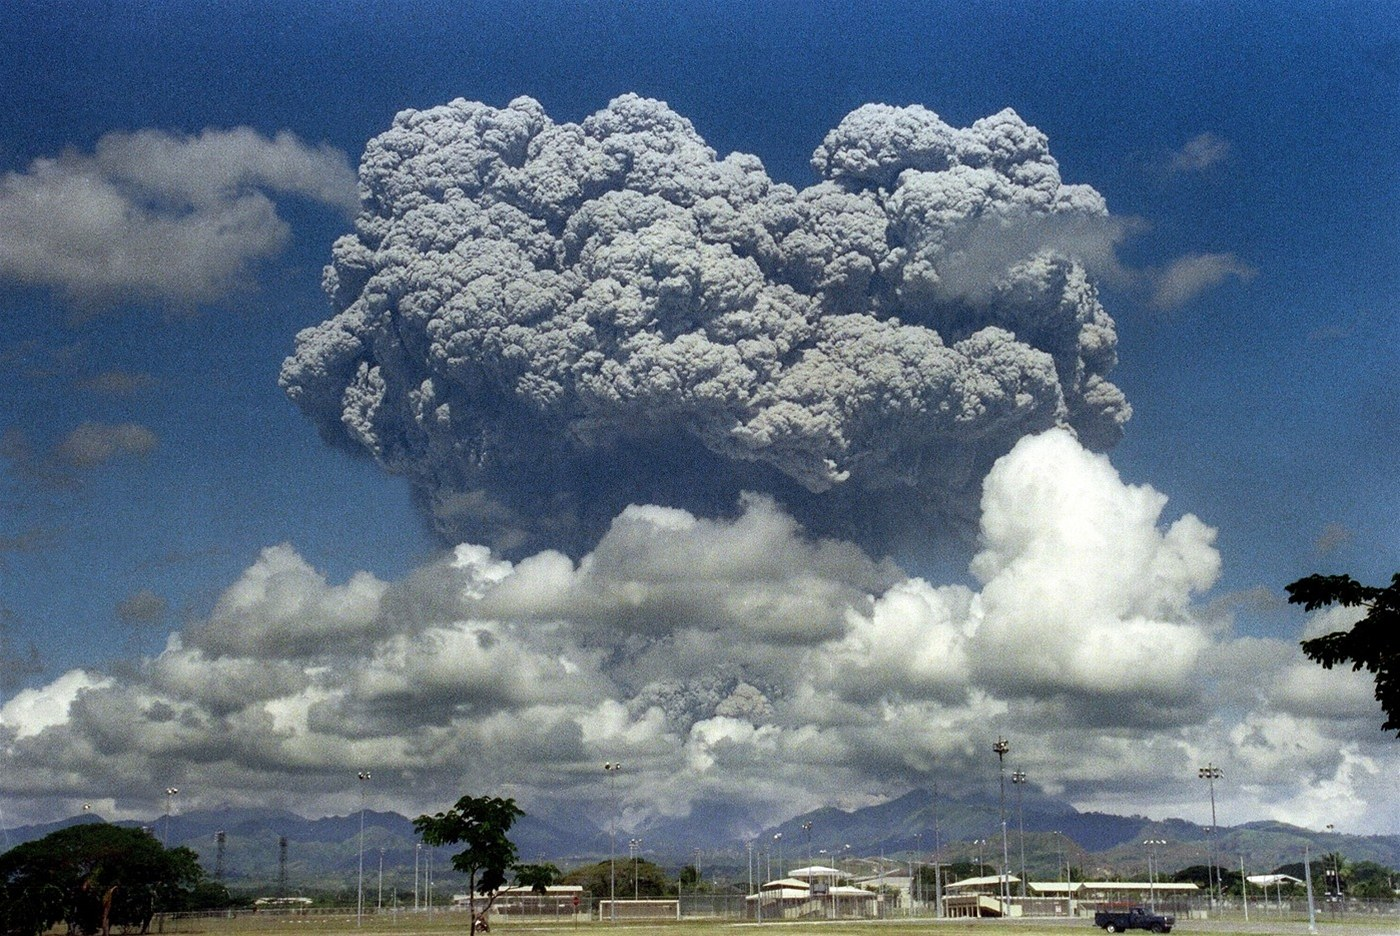 pinatubo 12 June 1991